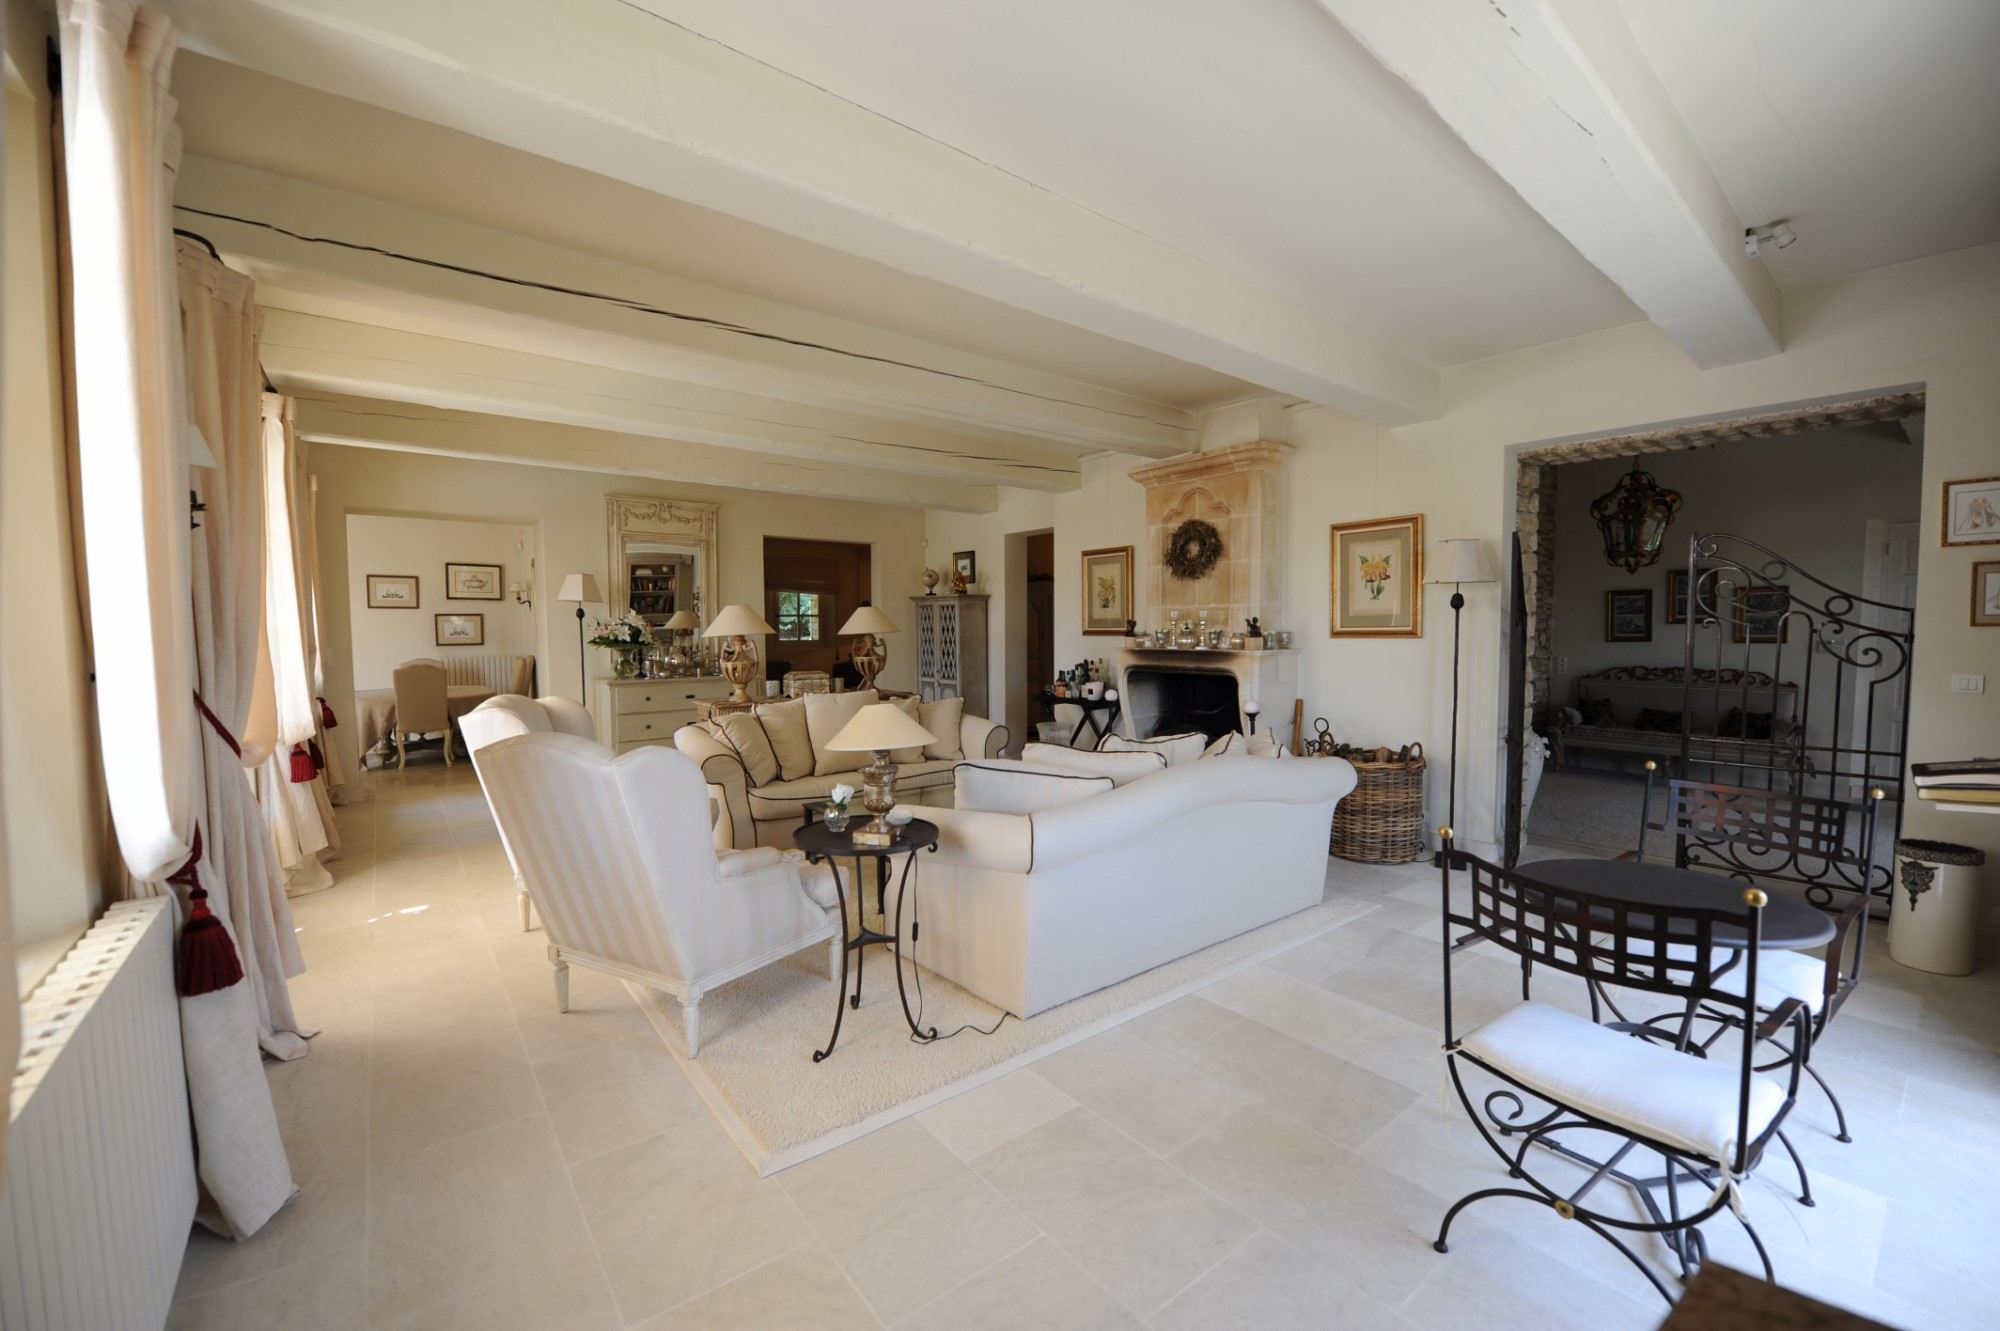 In Gordes, superb property with landscaped park and a swimming pool area with terraces